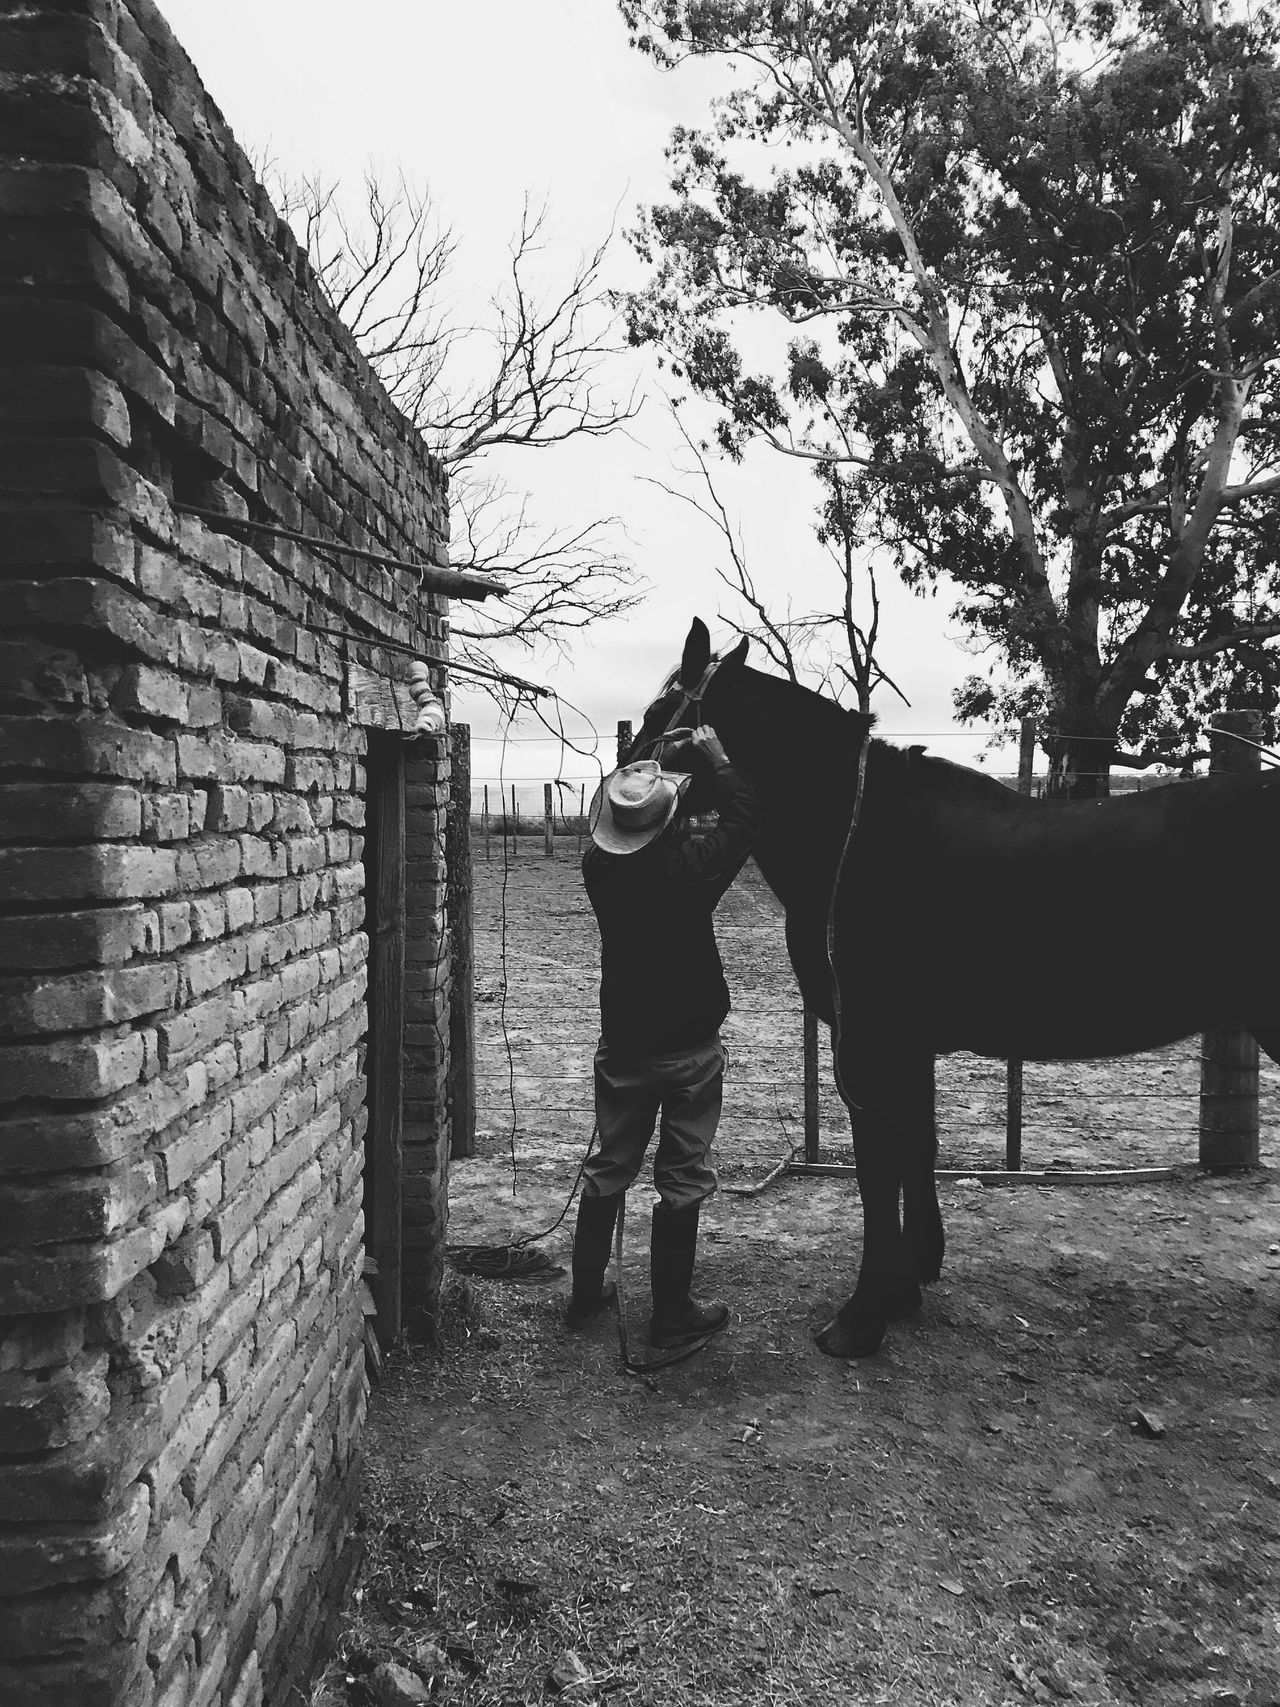 One Animal Domestic Animals Brick Wall Outdoors Day Mammal Two People Standing Full Length Men Adult People Only Men Adults Only Sky The Street Photographer - 2017 EyeEm Awards